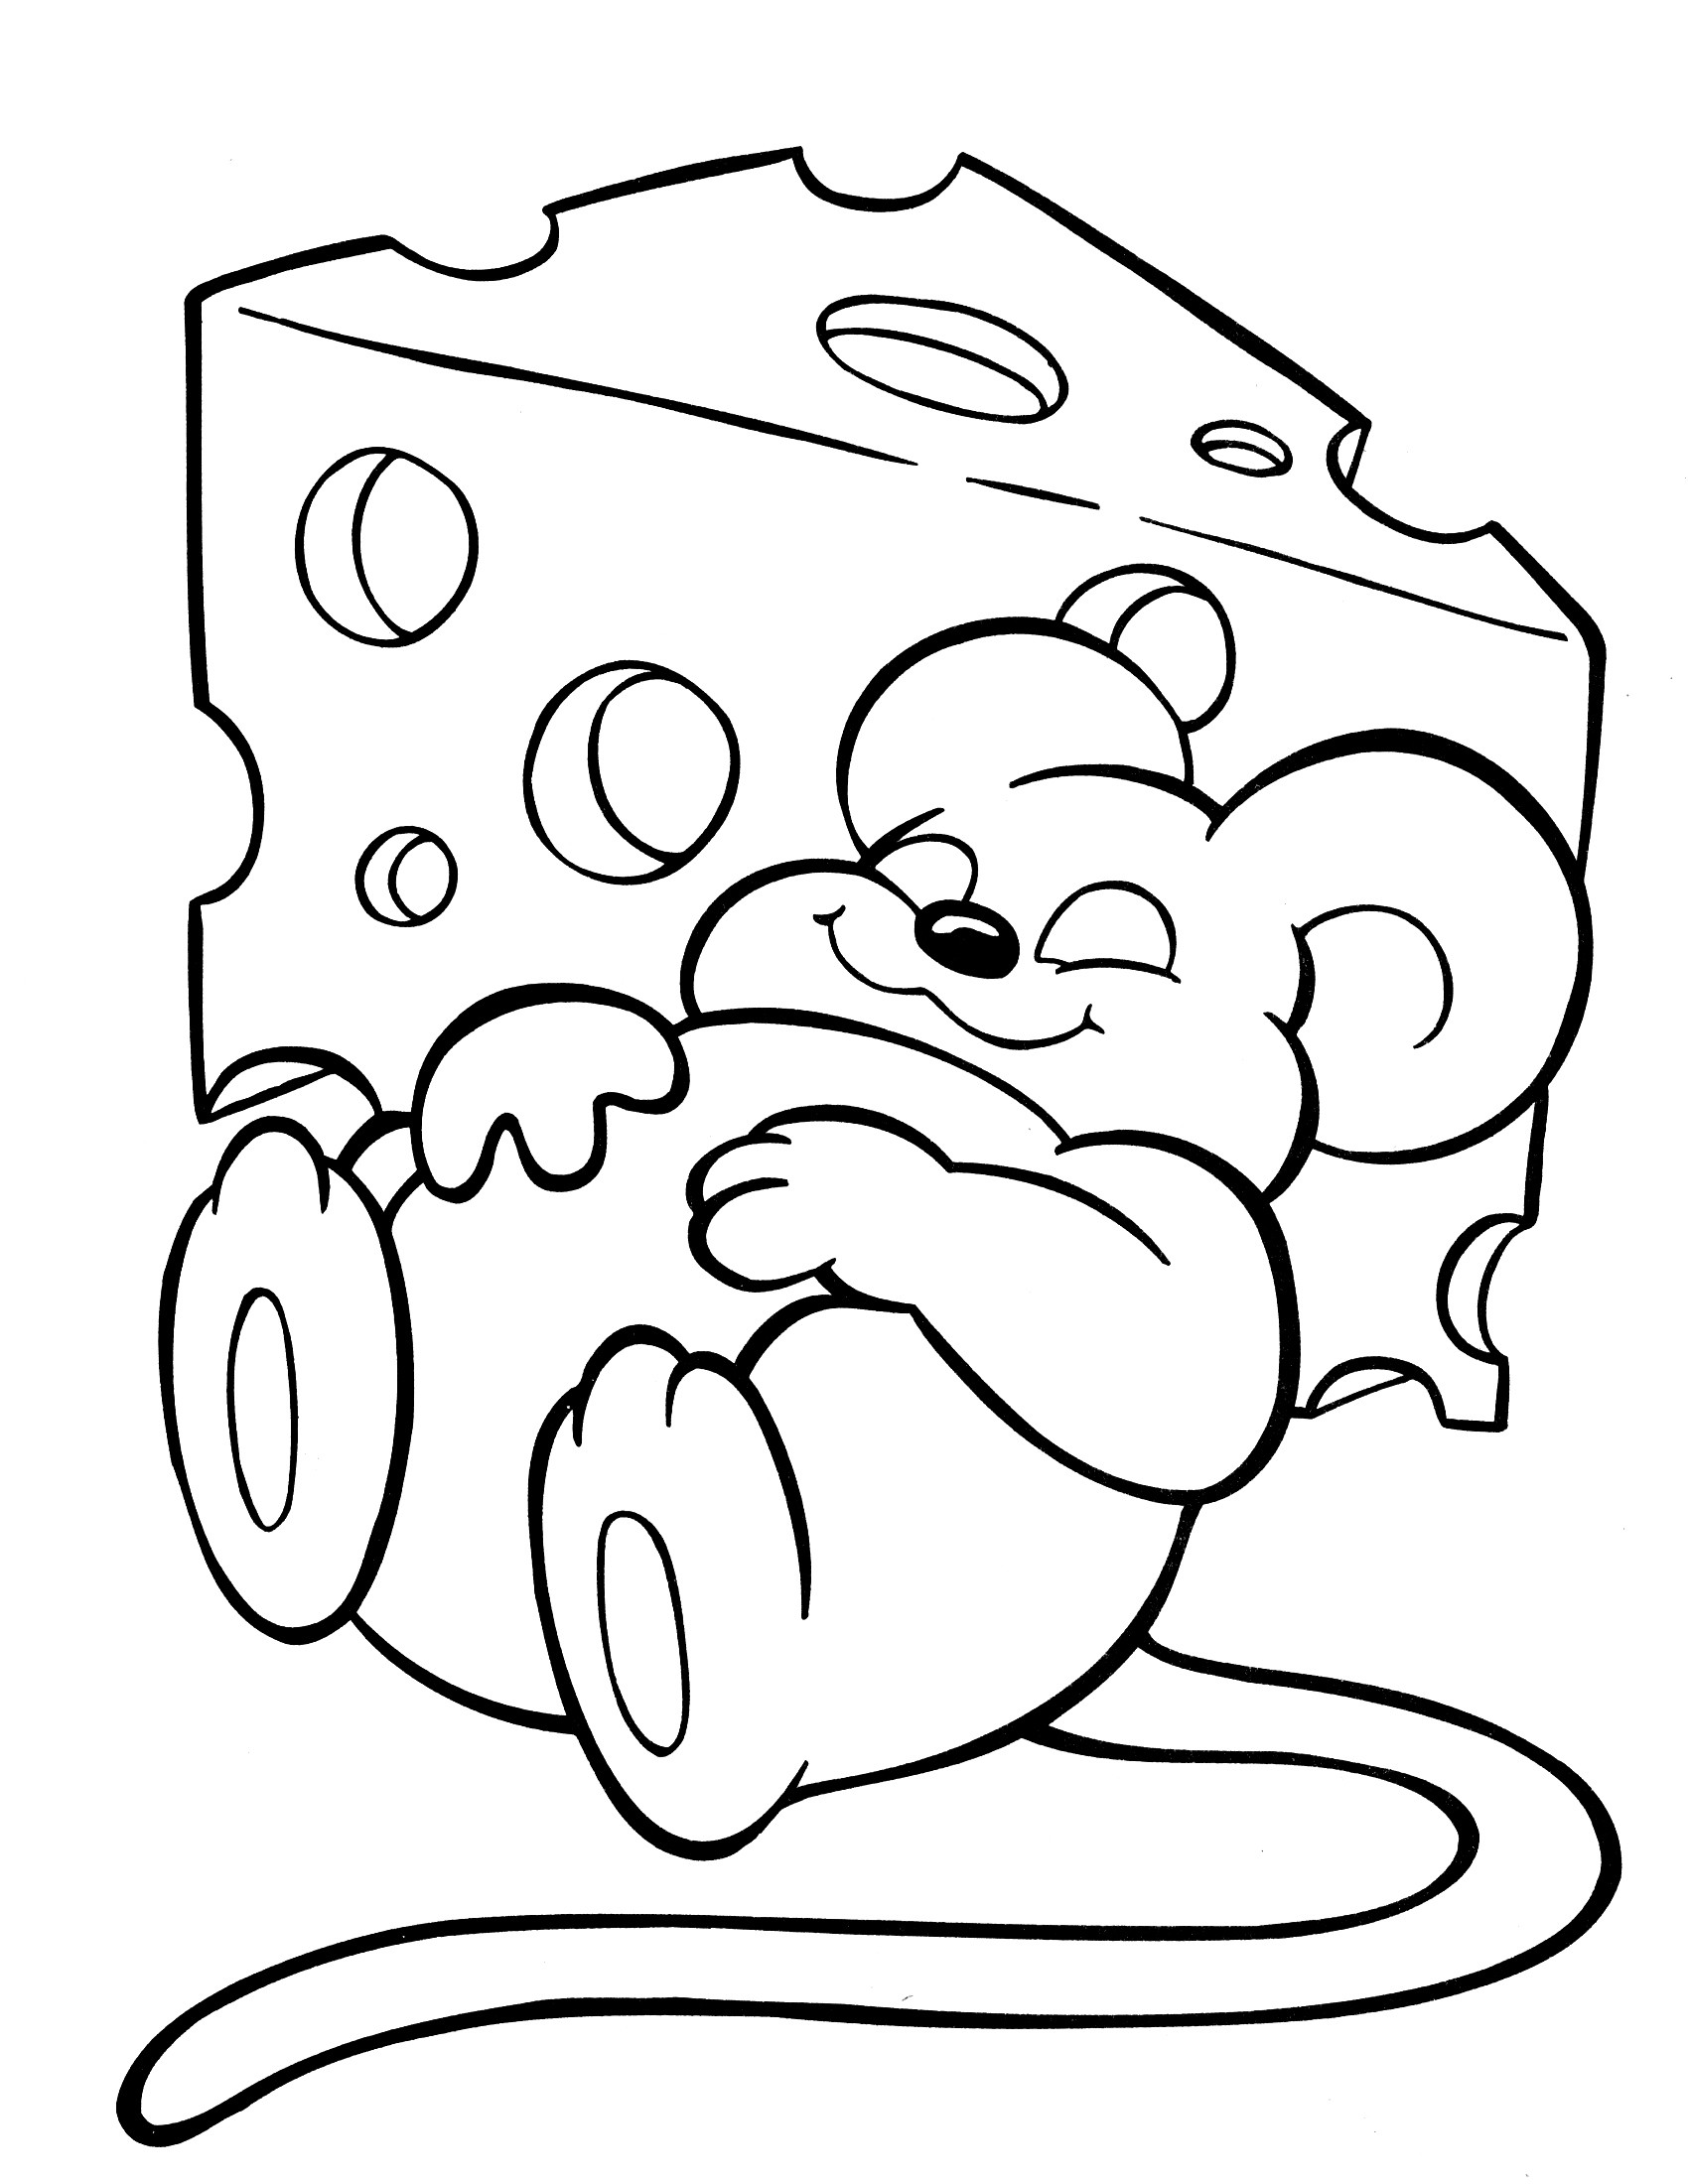 Free Coloring Sheets For Kids Crayola  crayola coloring pages